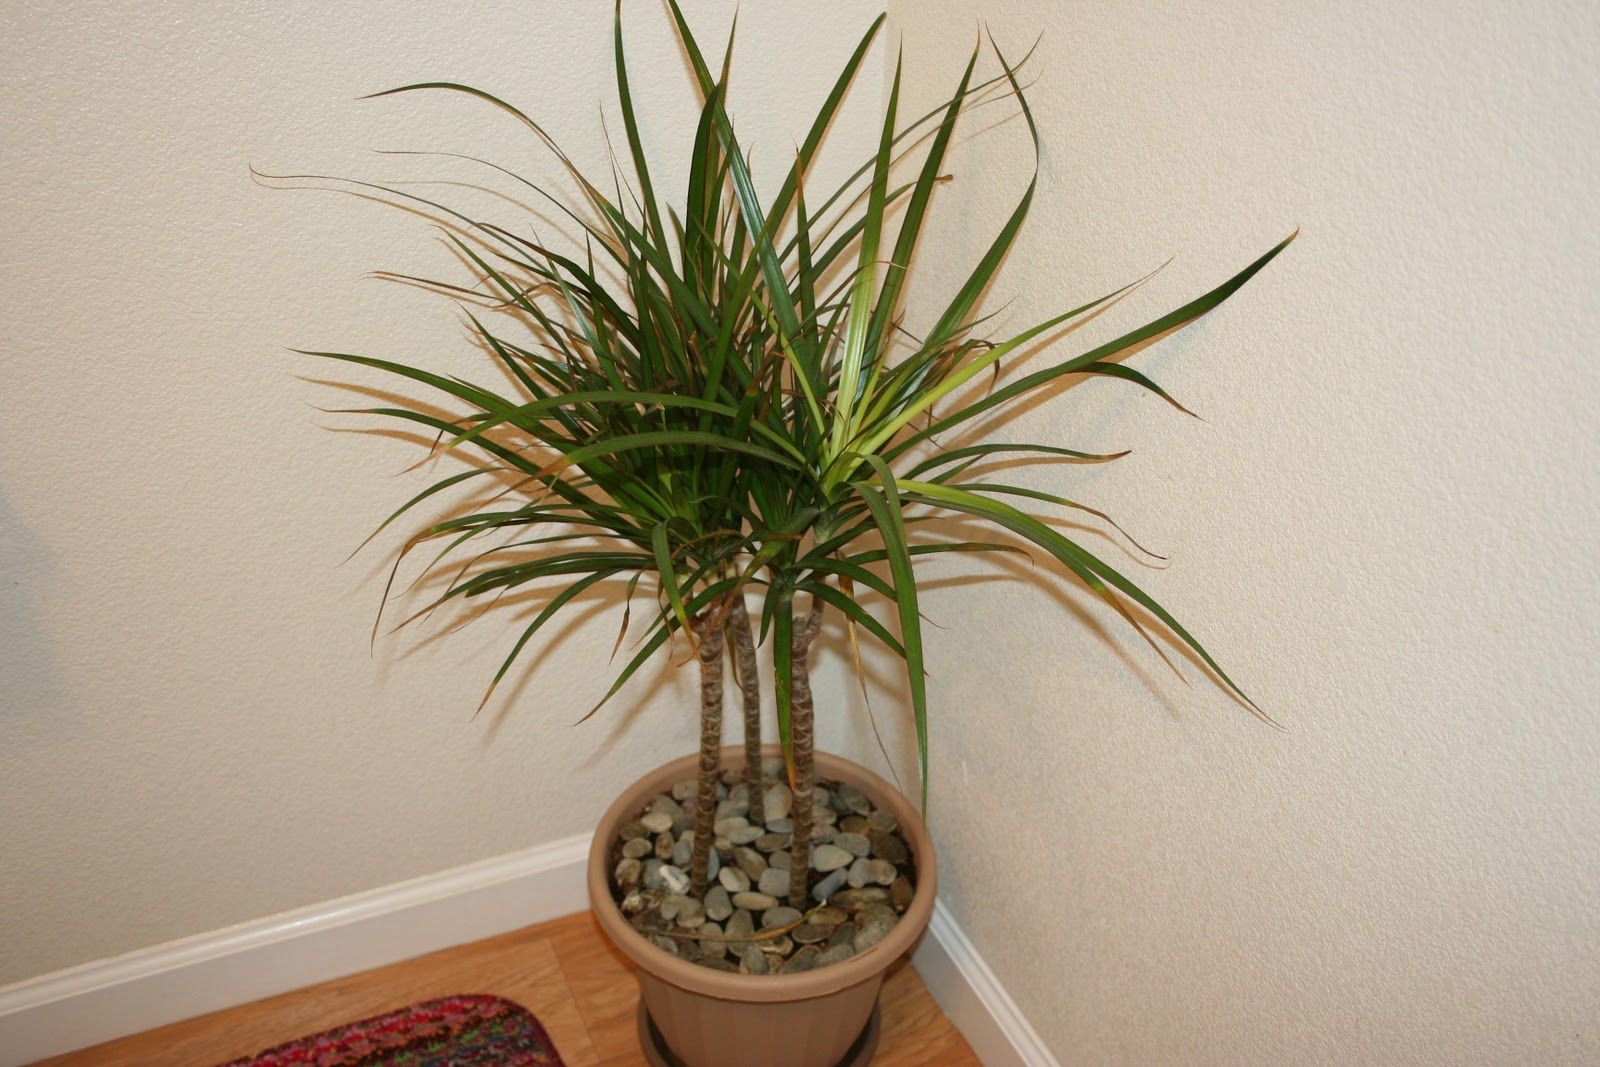 Small Household Plants 10 Tropical House Plants Any One Can Grow Indoors The